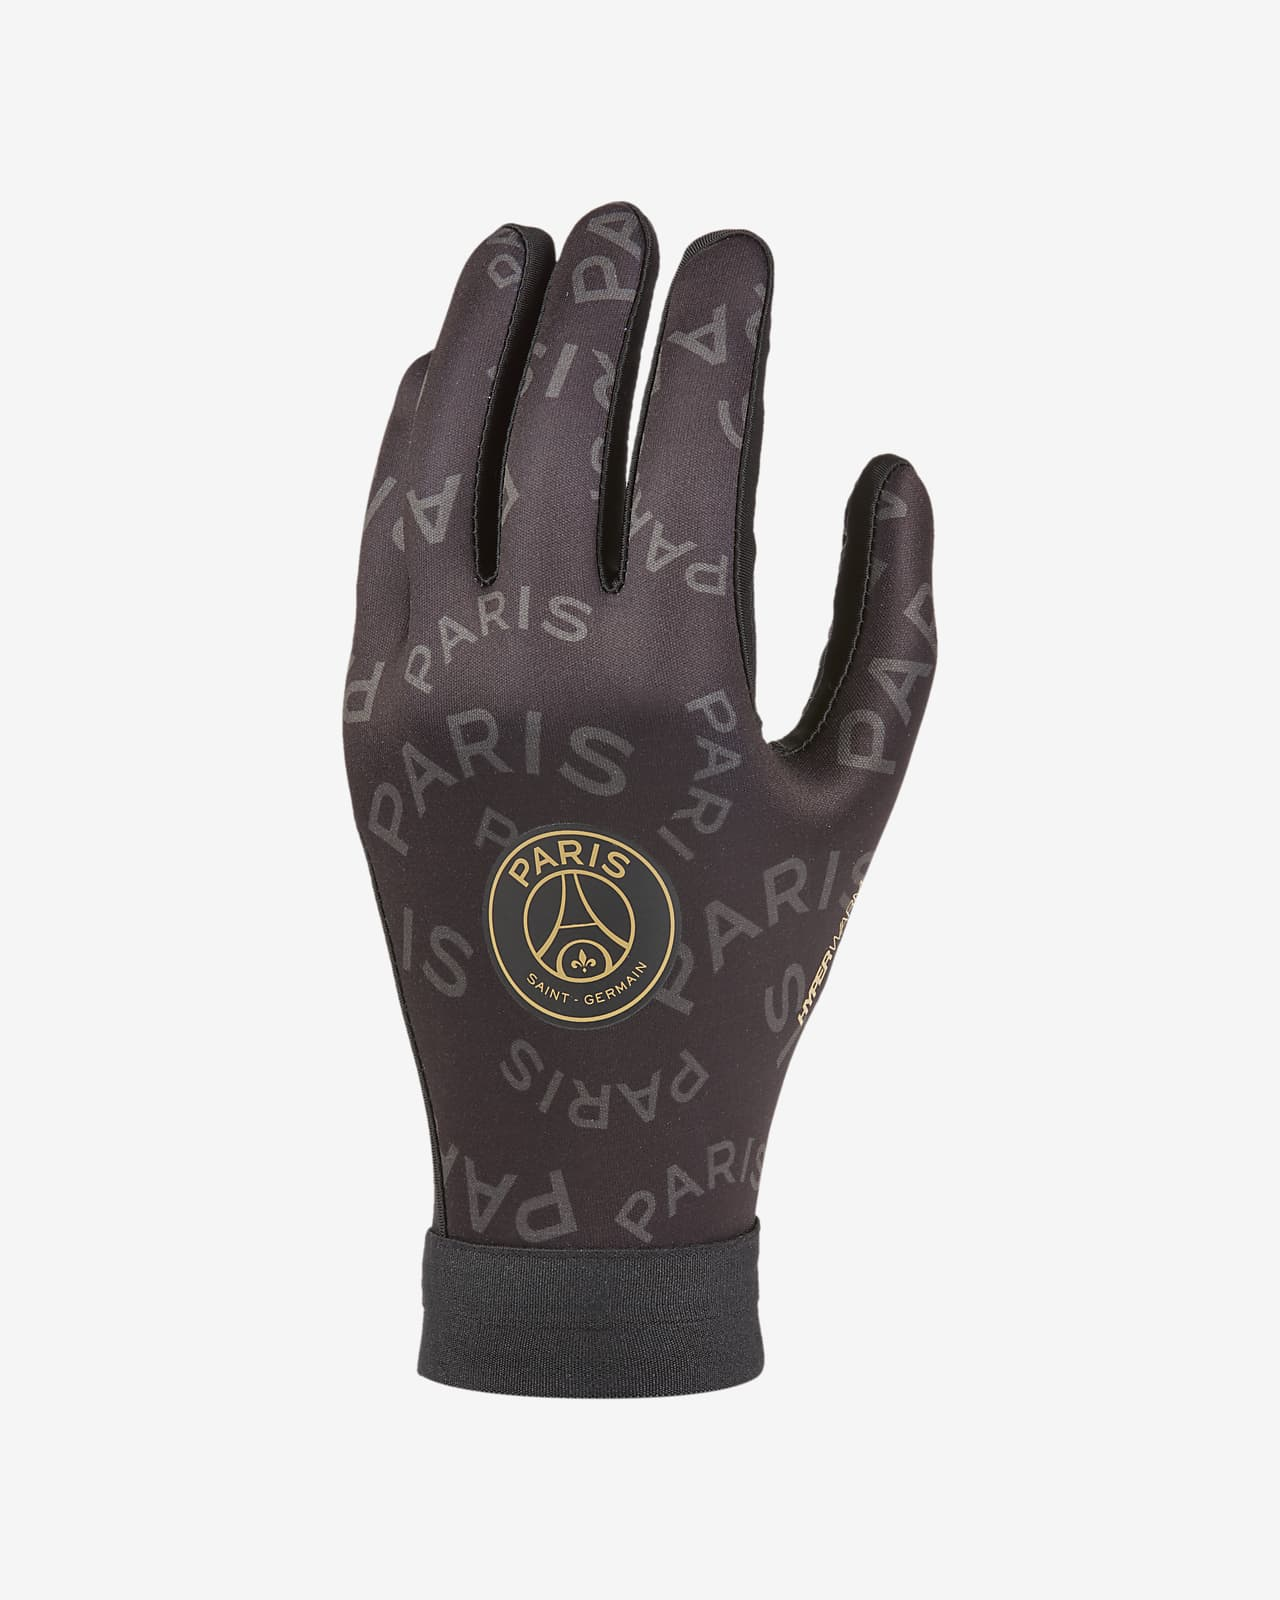 Jordan x Paris Saint-Germain HyperWarm Football Gloves